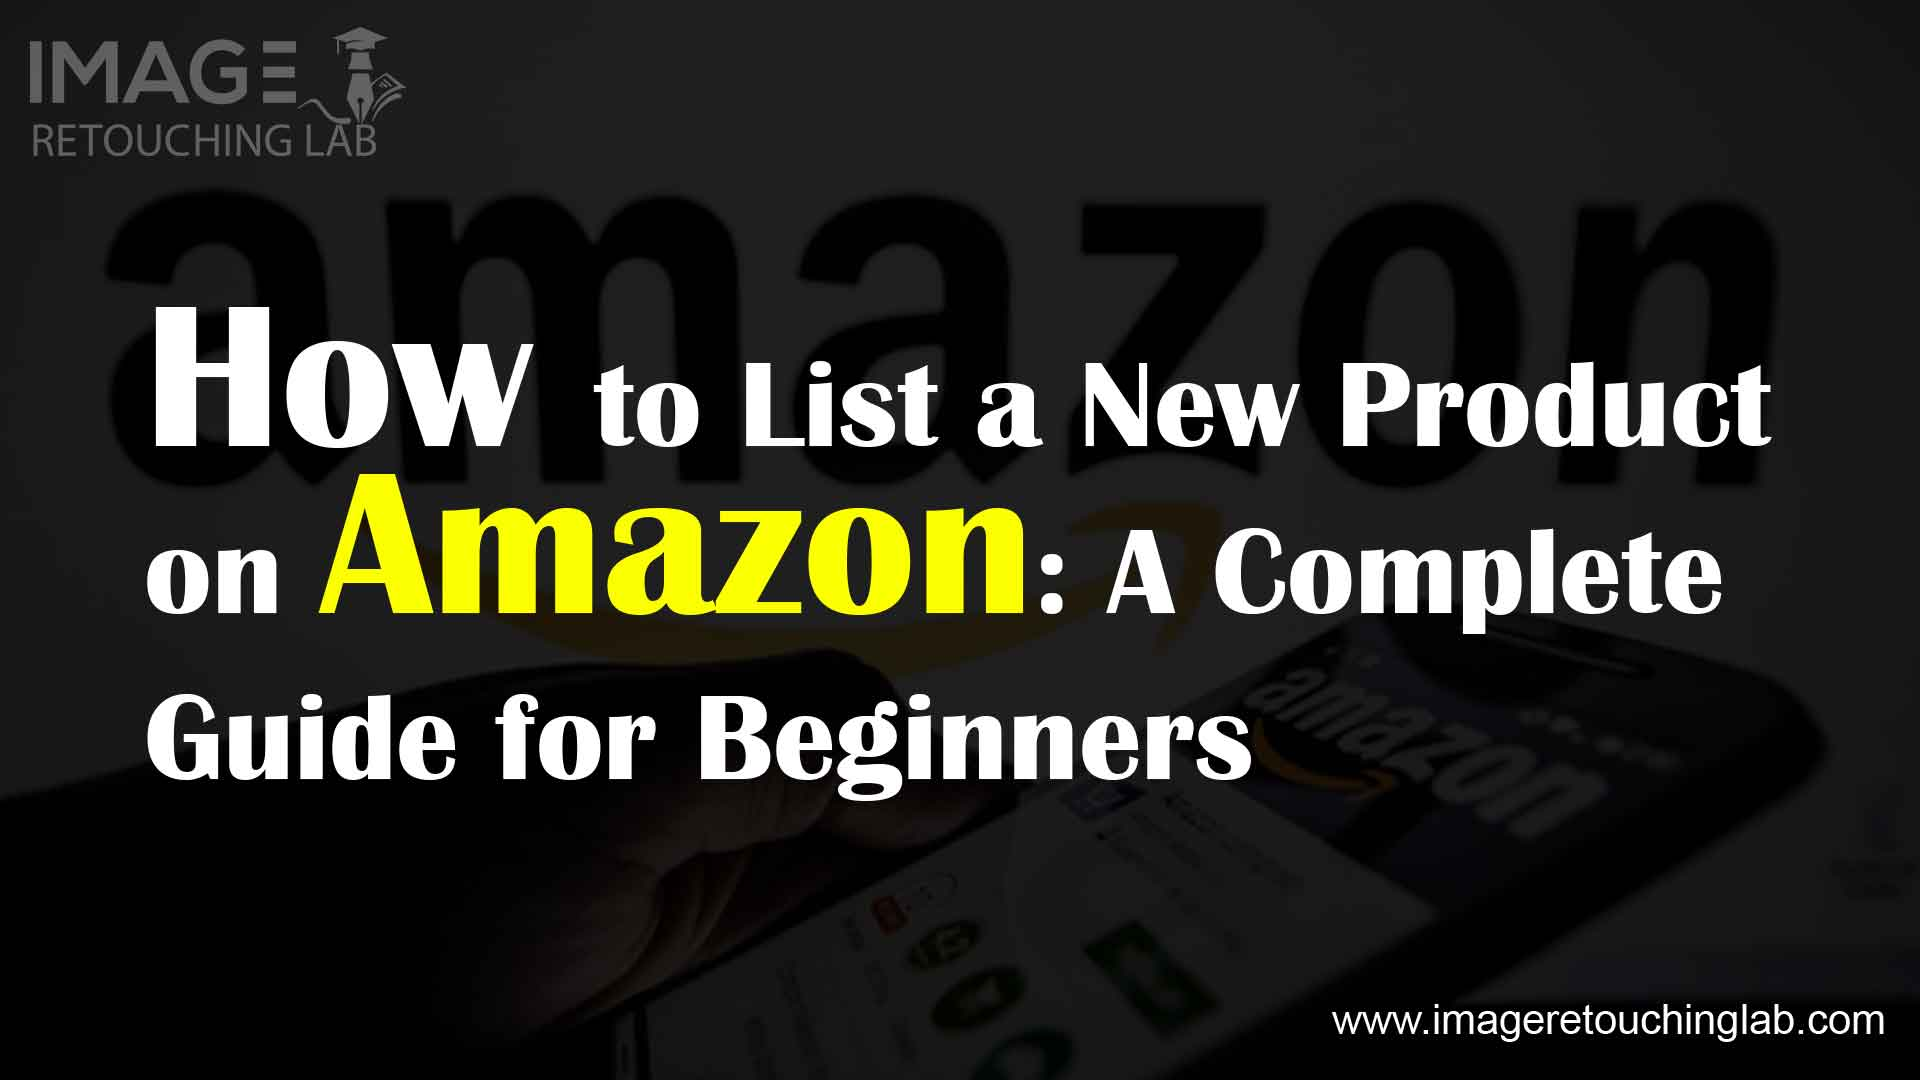 How to List a New Product on Amazon: A Complete Guide for Beginners